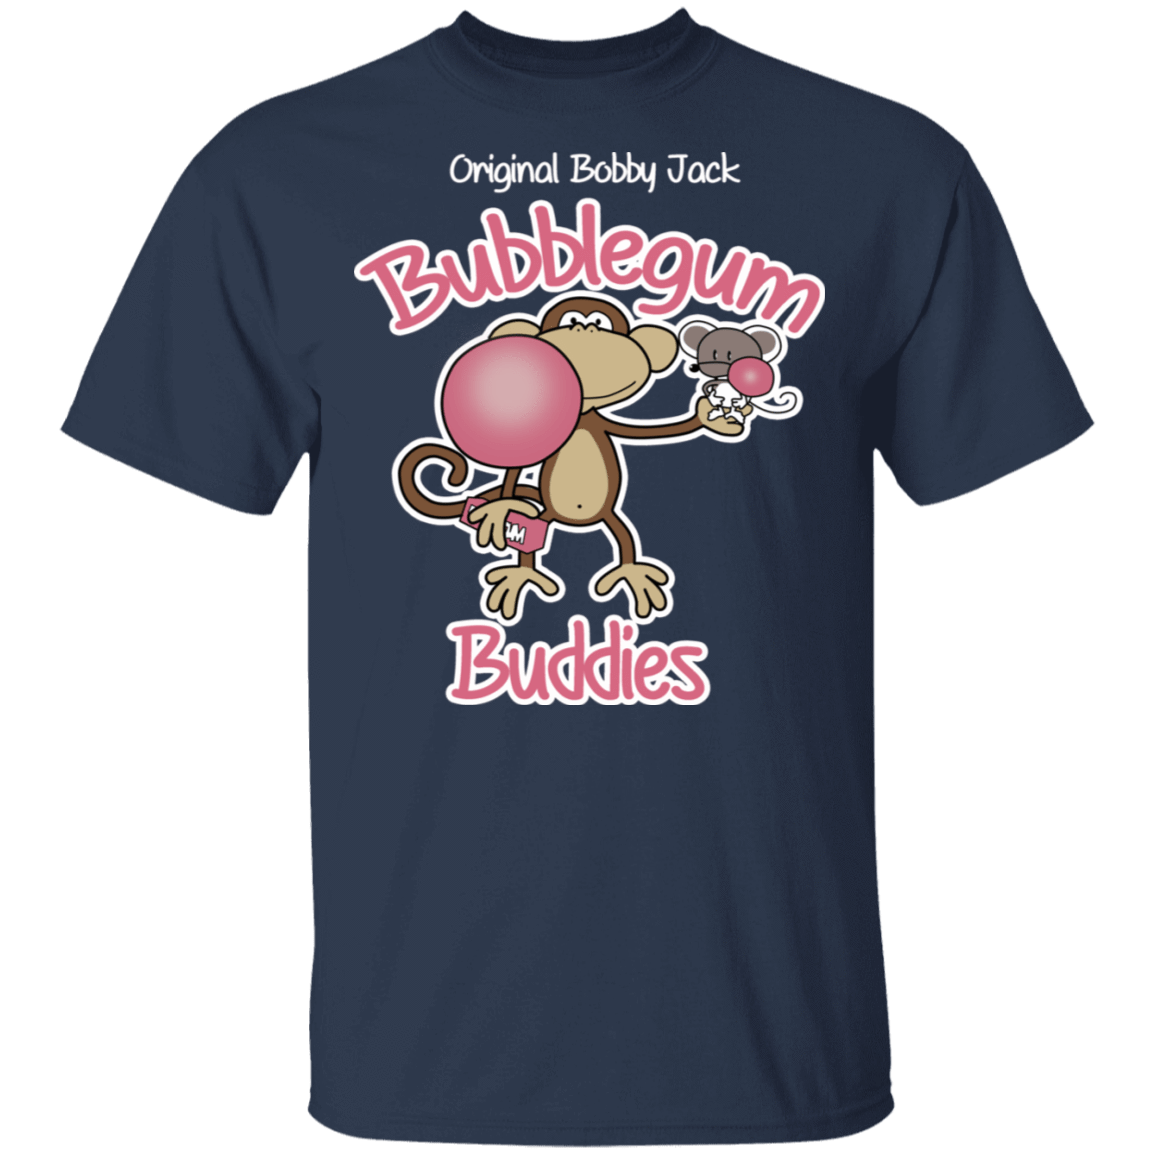 Original Bobby Jack Bubblegum Buddies Monkey T-Shirts, Hoodies, Tank 22-111-79535890-250 - Tee Ript